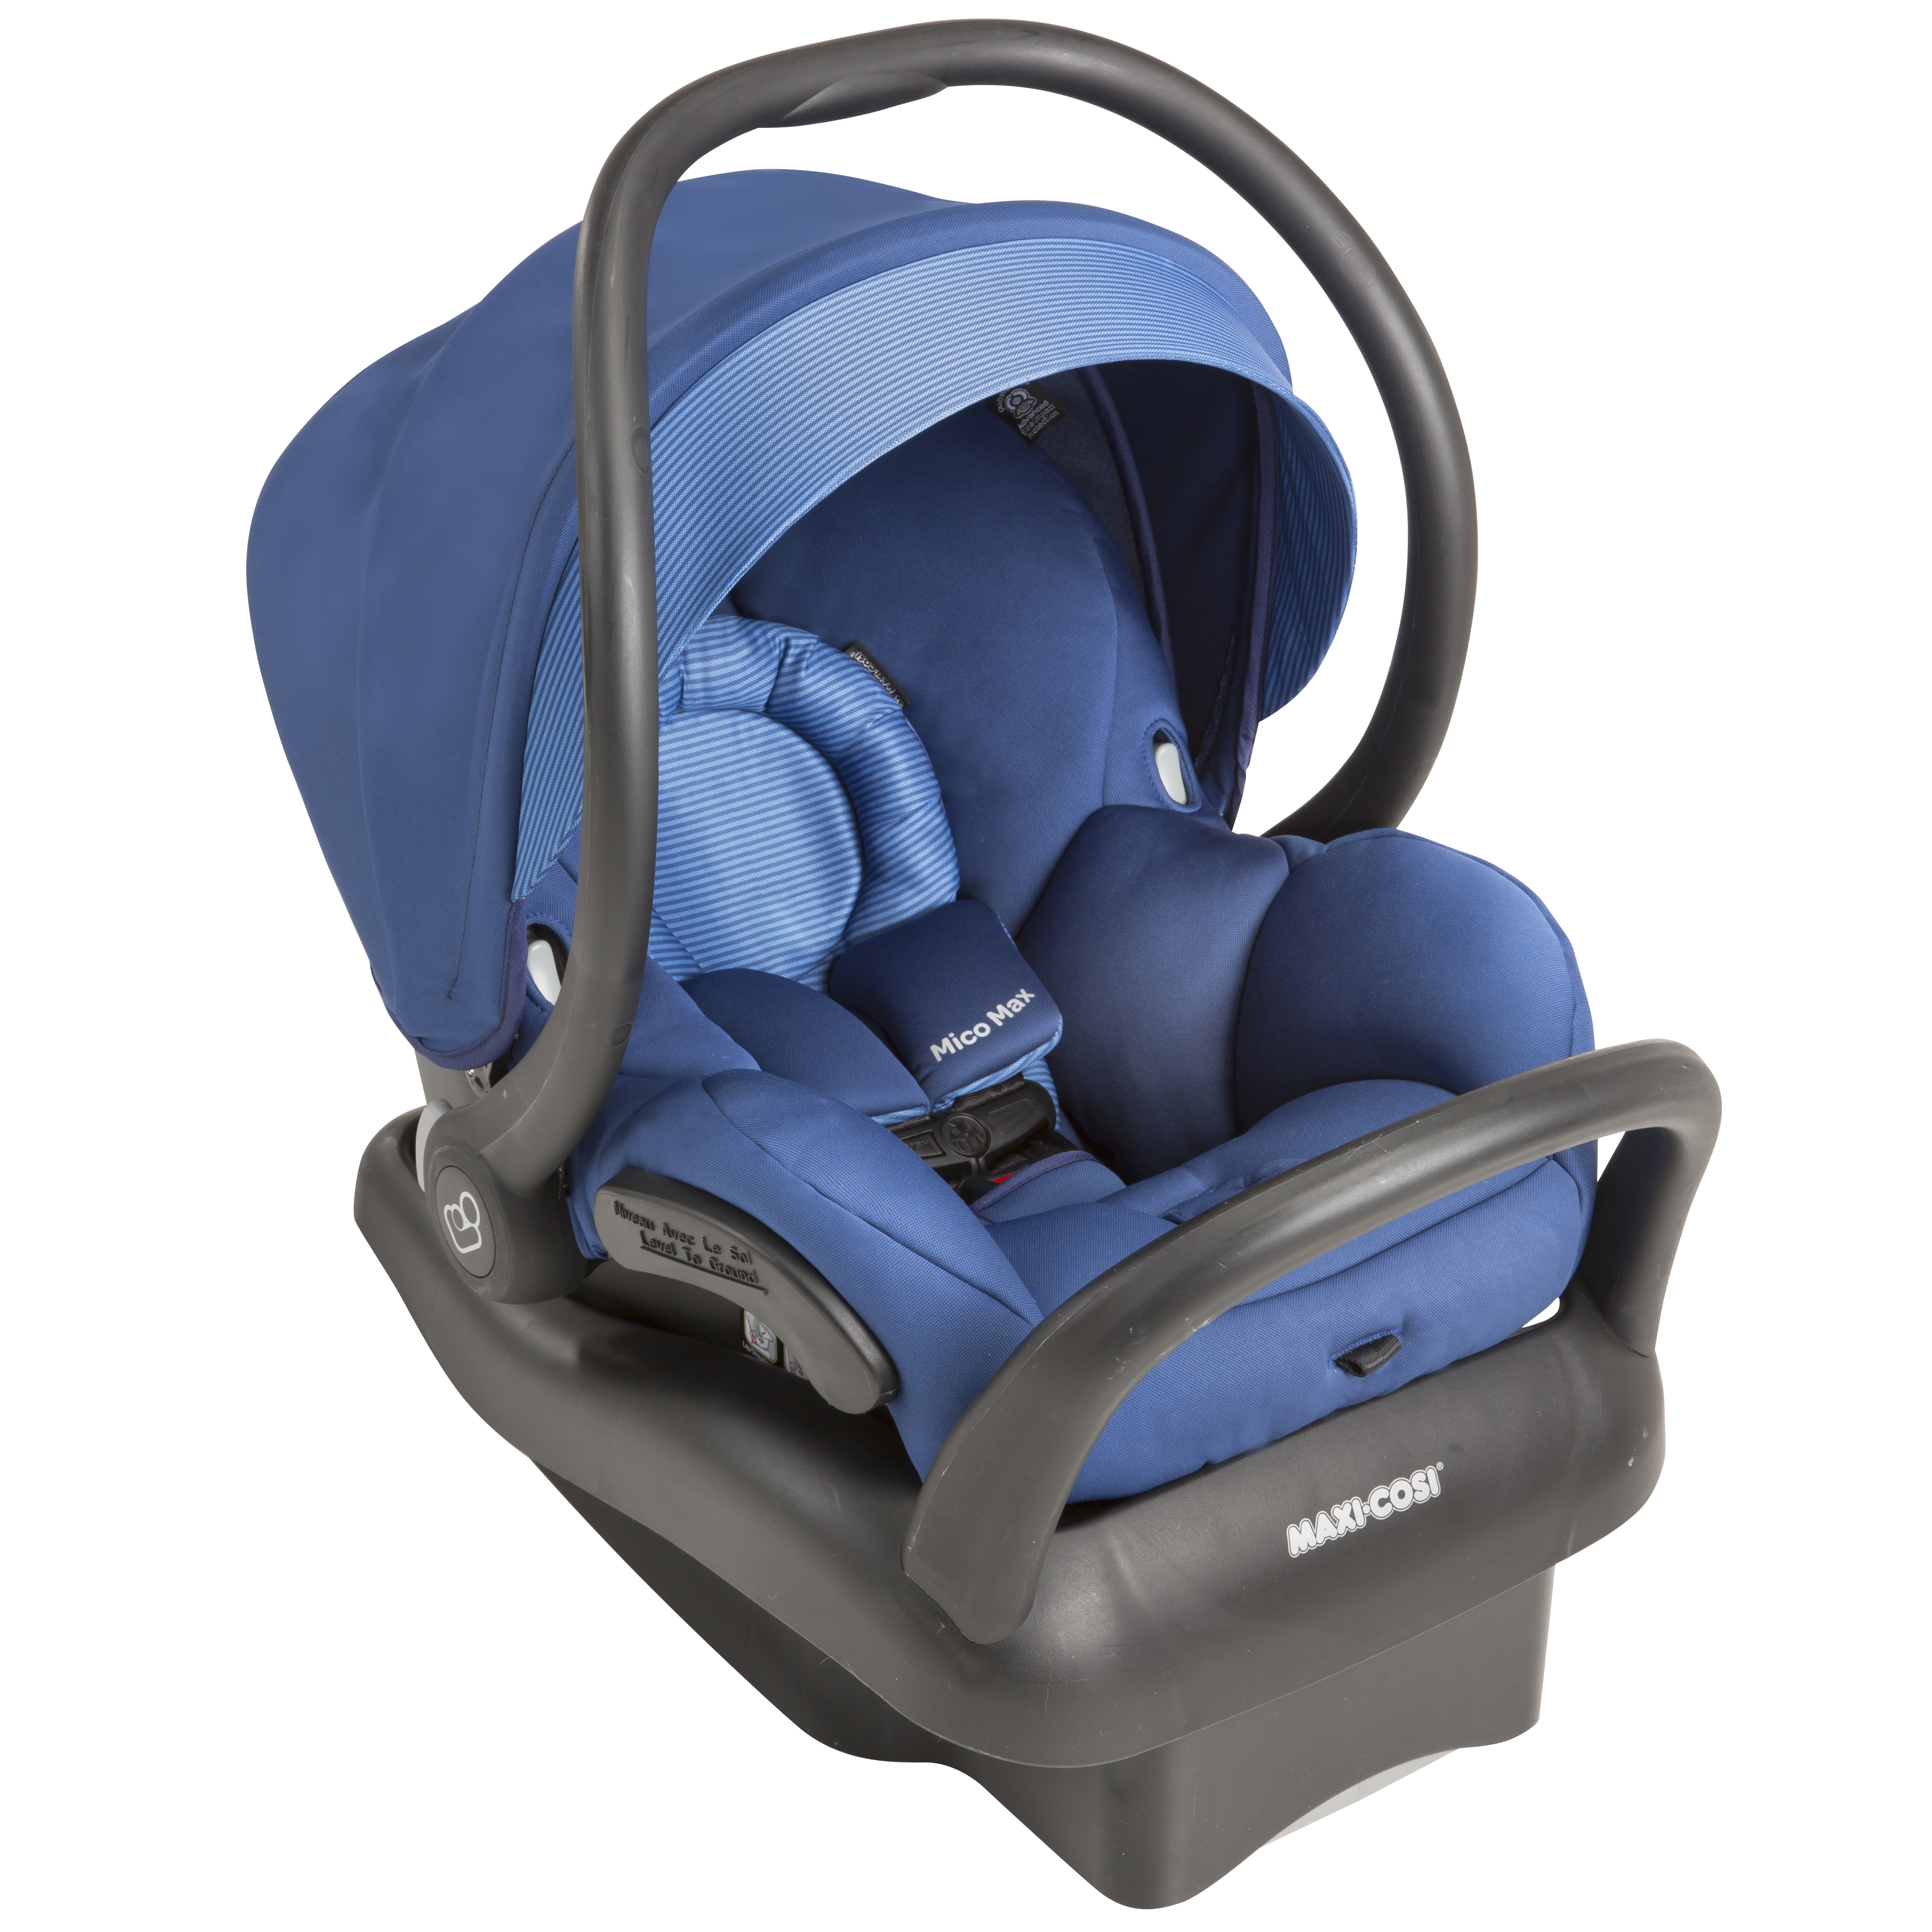 Maxi-Cosi Mico Max 30 Infant Car Seat, Blue Base